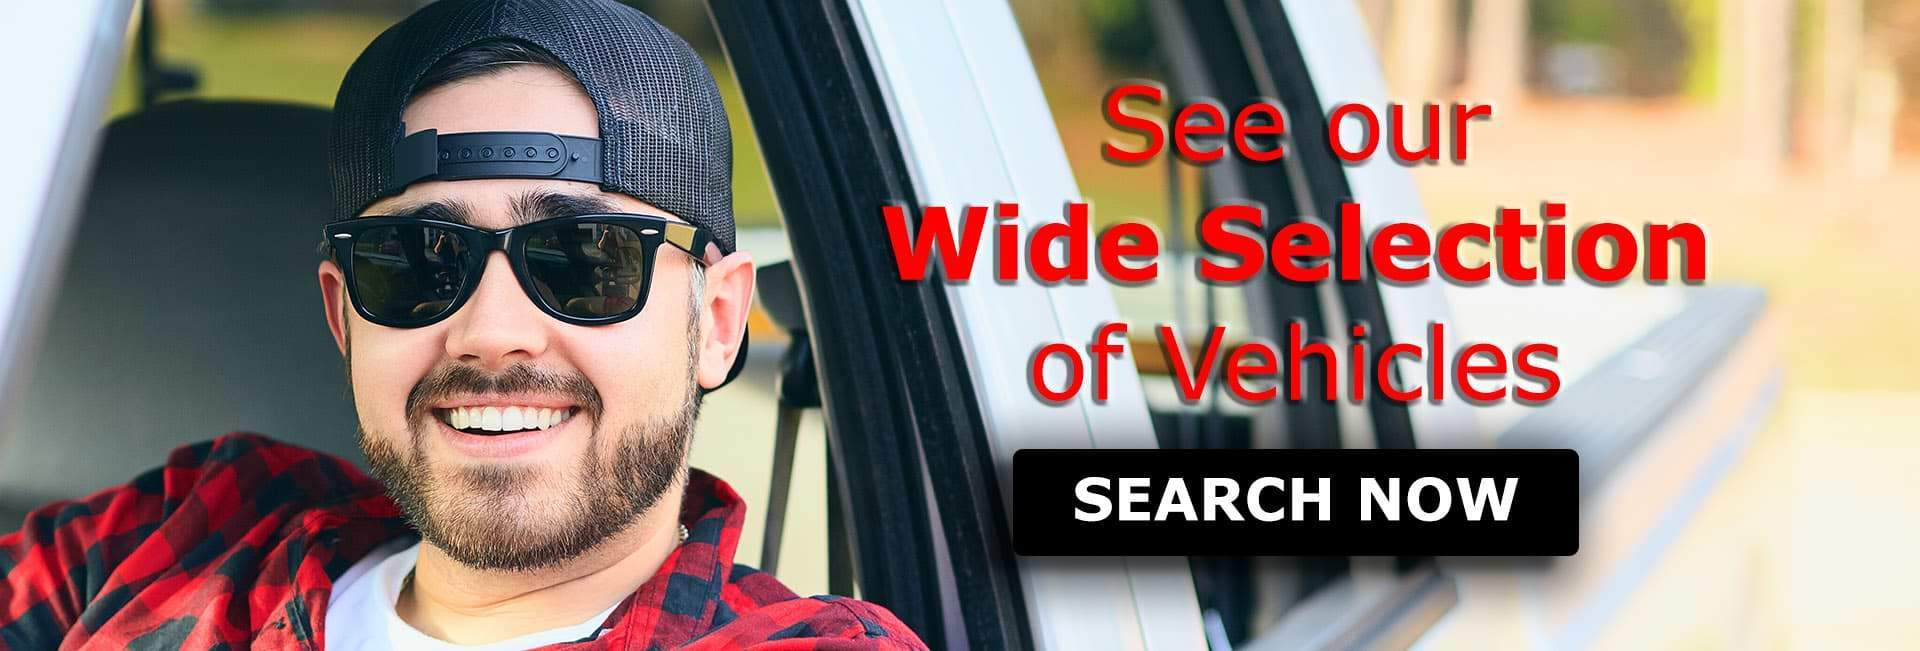 See our Wide Selection of Vehicles at Van Horn Budget